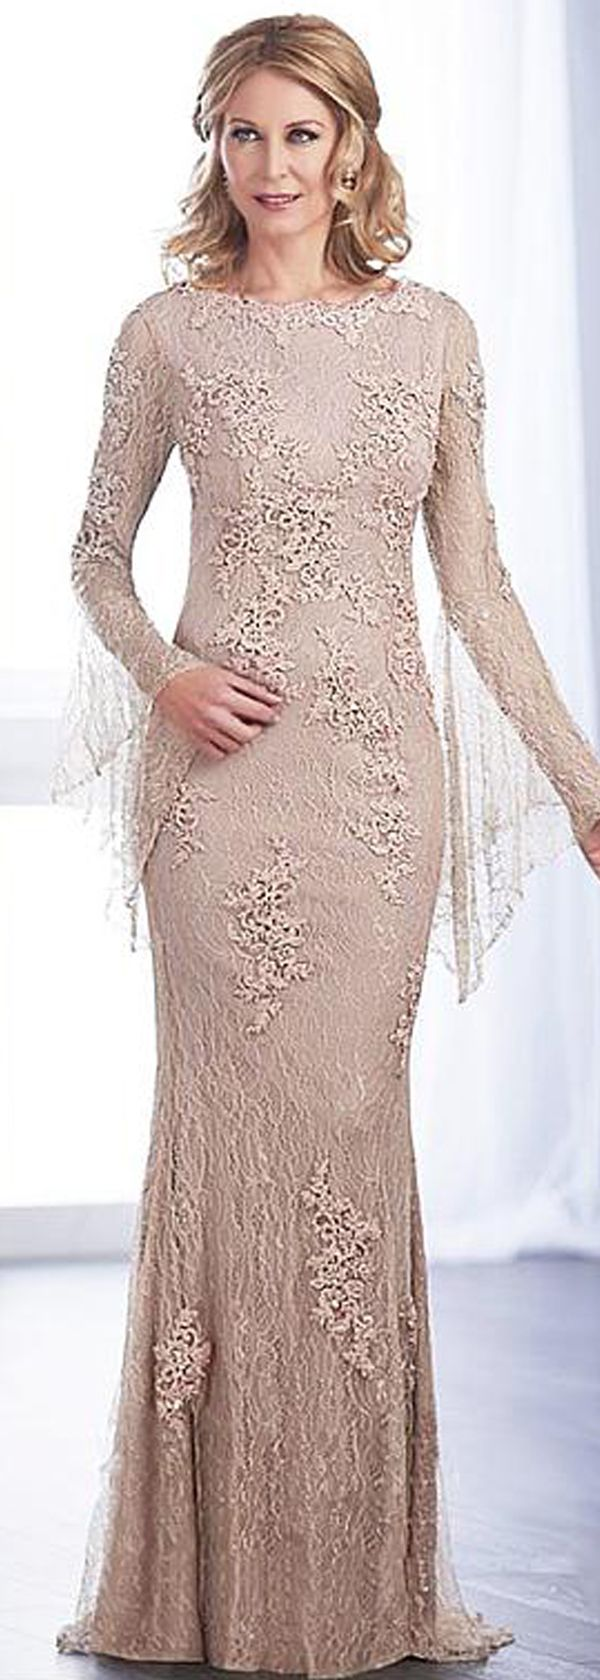 Romantic Tulle Bateau Neckline Poet Sleeves Floor-length Sheath/Column Mother Of The Bride Dresses With Beaded Lace Appliques